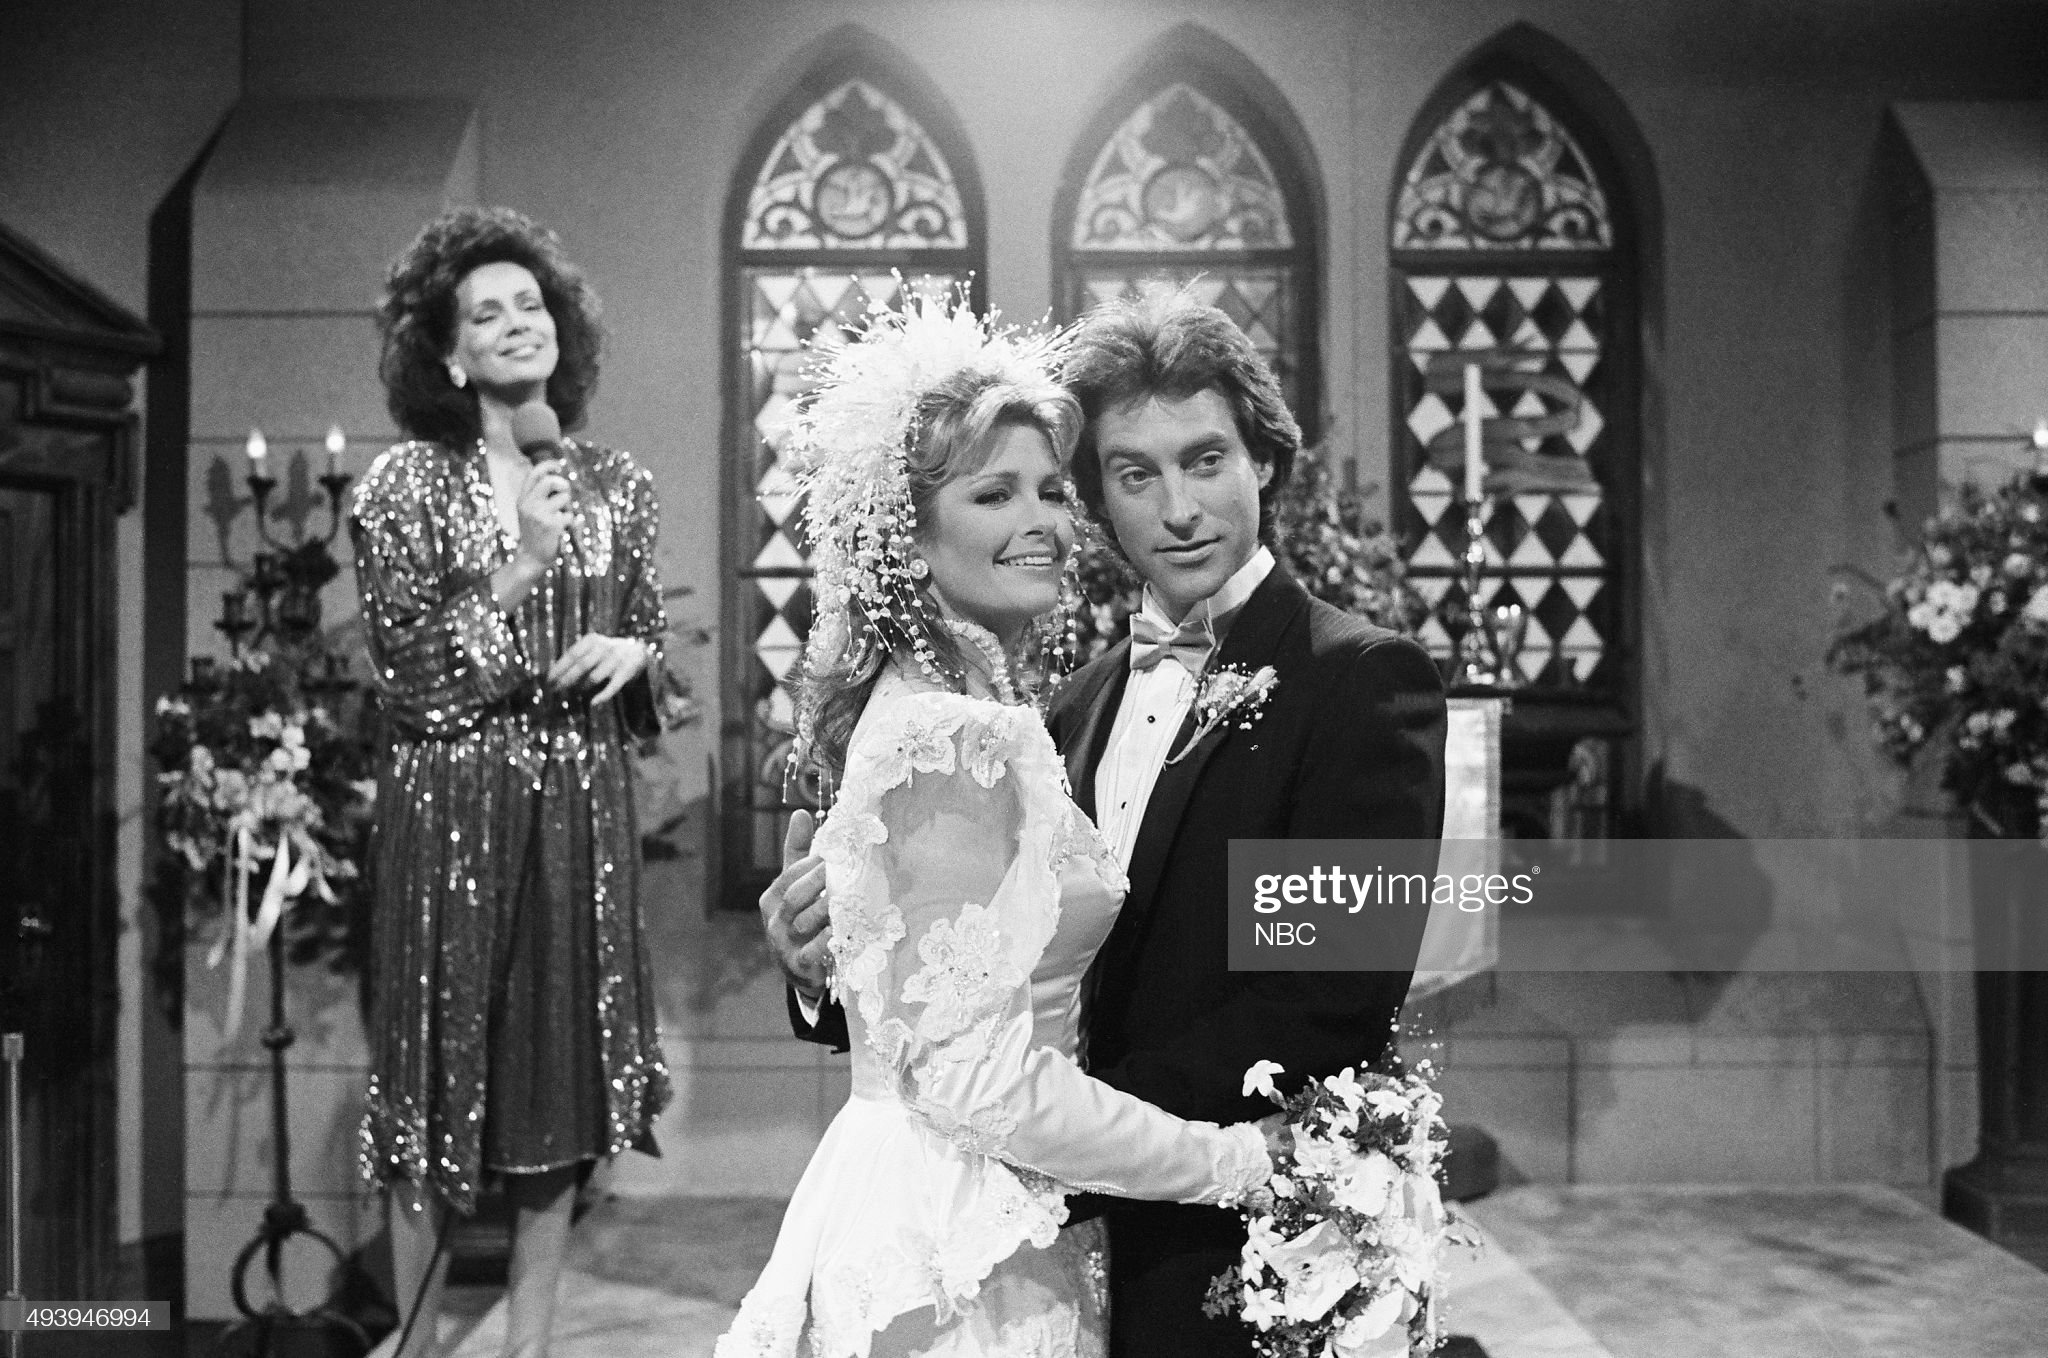 marlena-evans-roman-brady-wedding-pictured-marilyn-mccoo-as-tamara-picture-id493946994